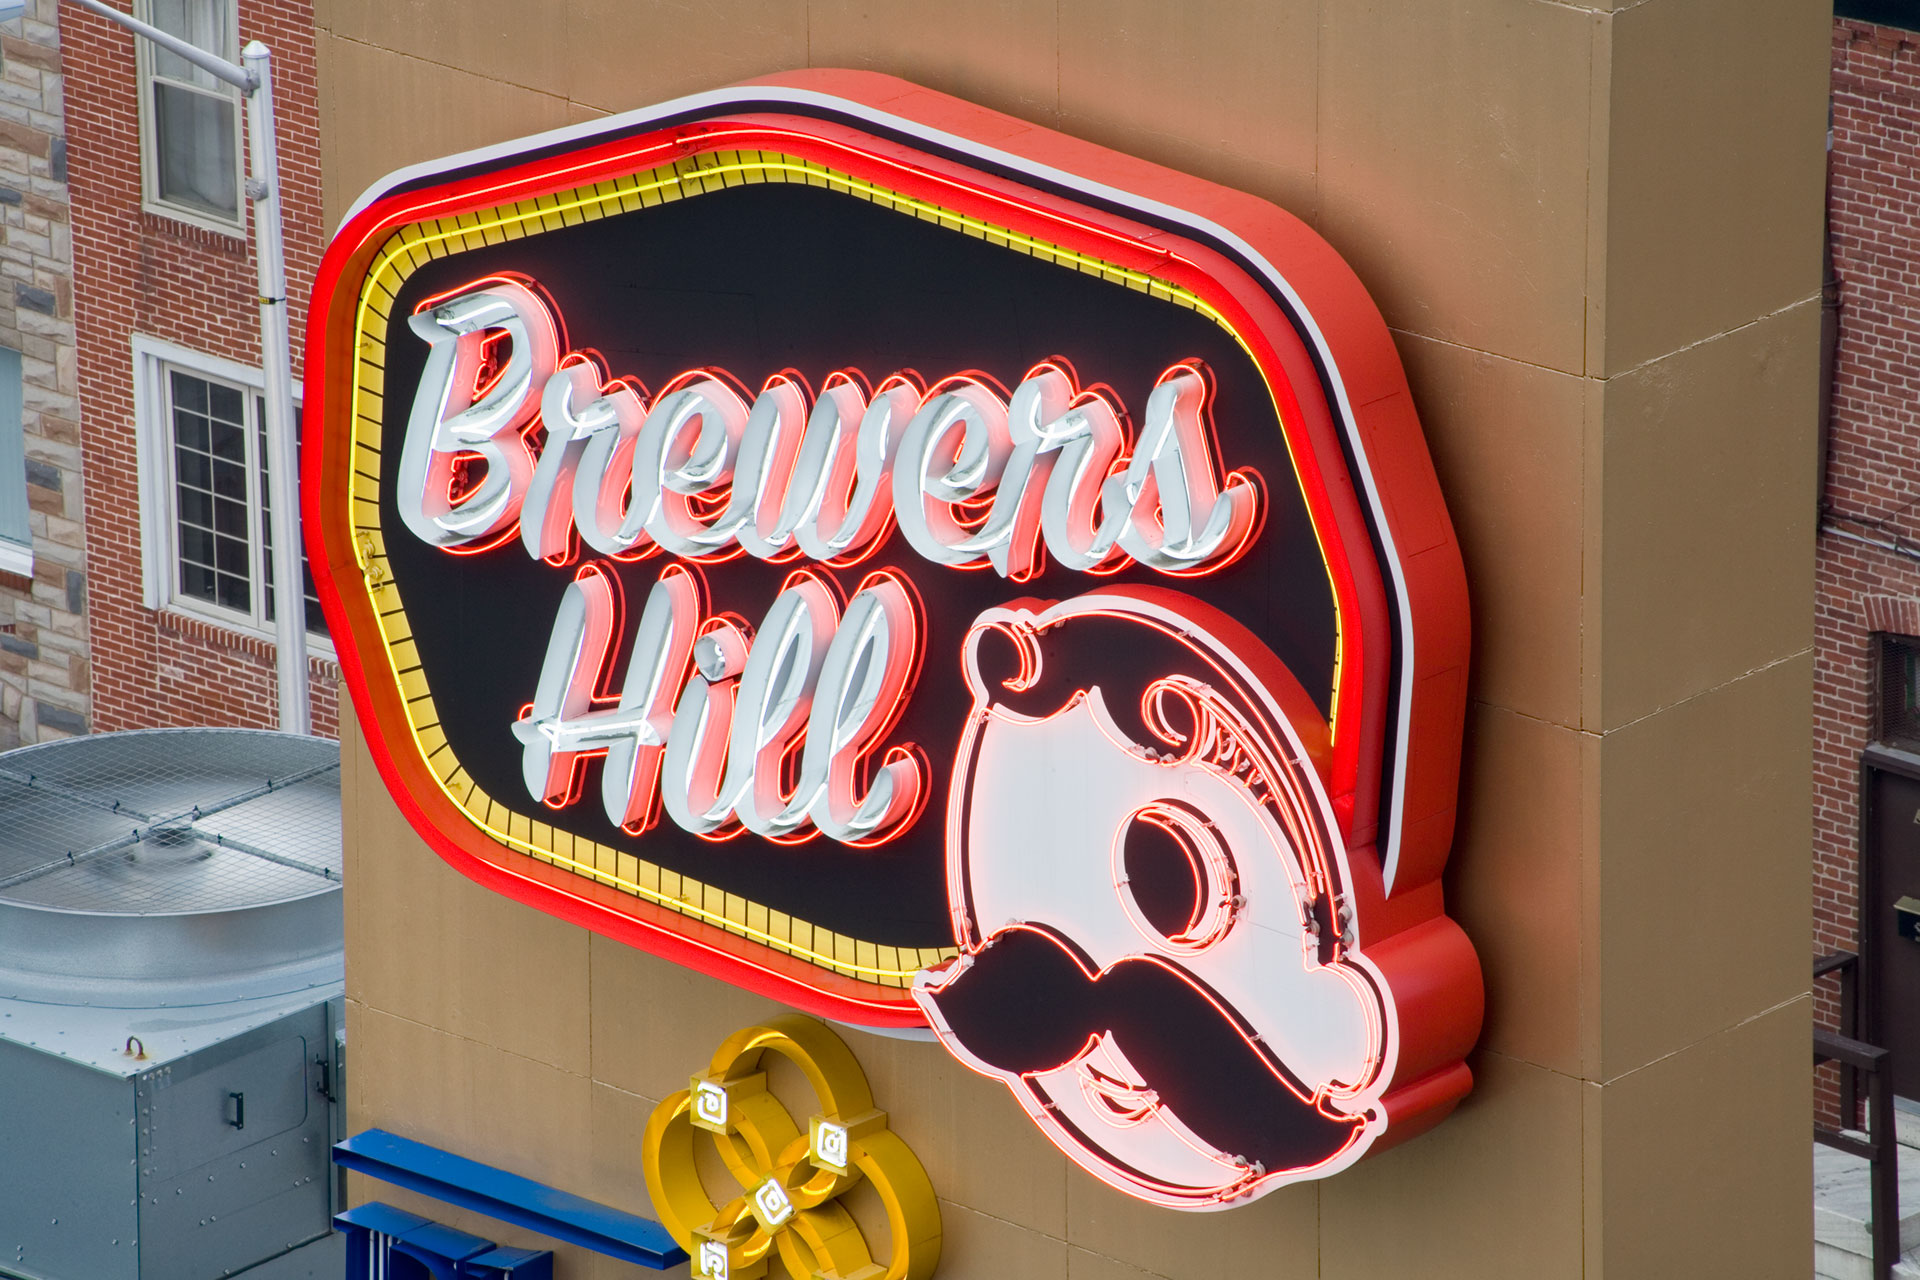 07_ashton_brewers_hill